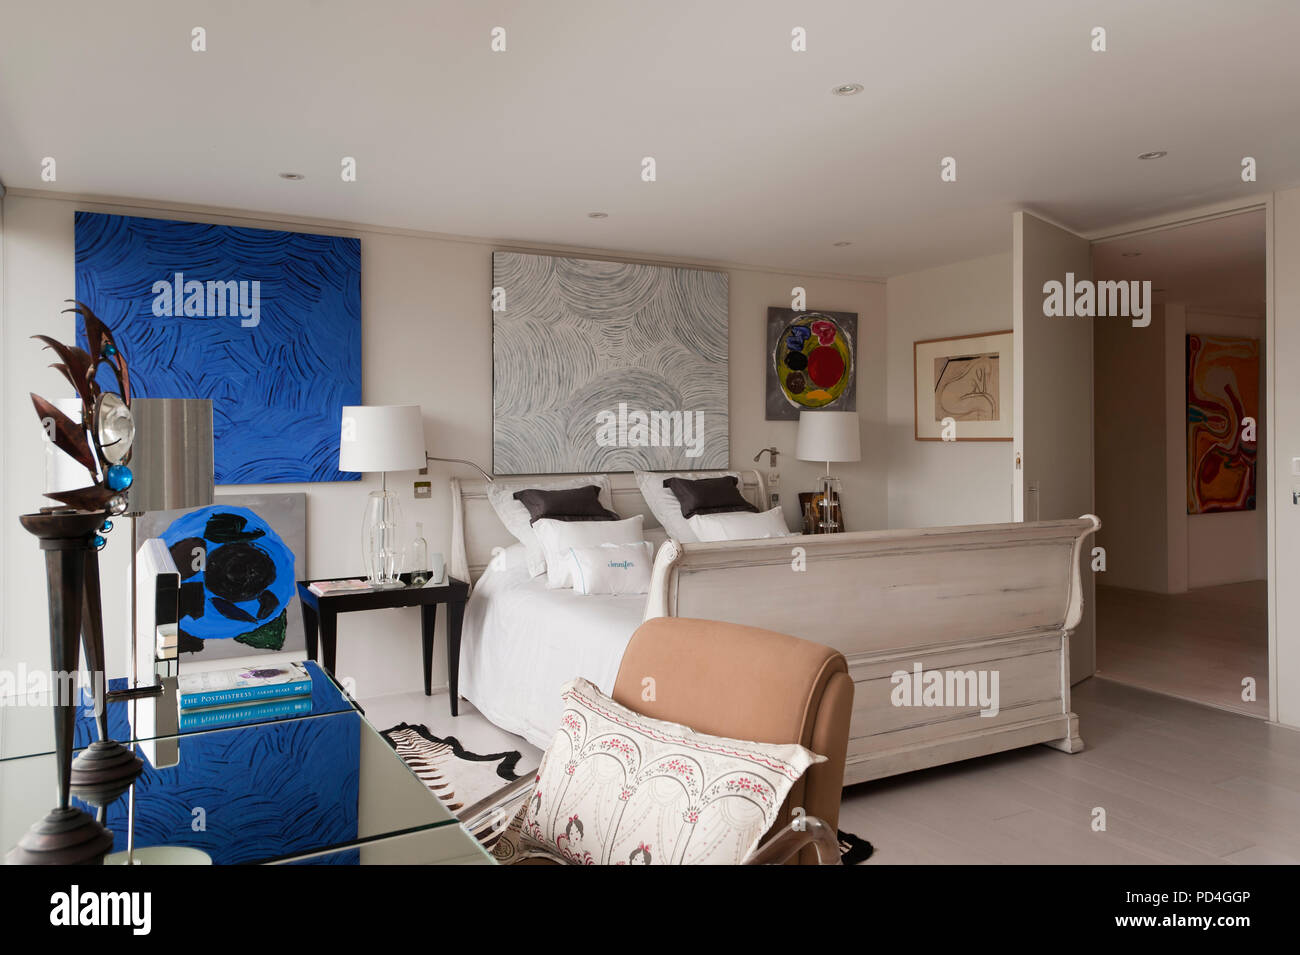 Chambre de style moderne Banque D\'Images, Photo Stock: 214615766 - Alamy